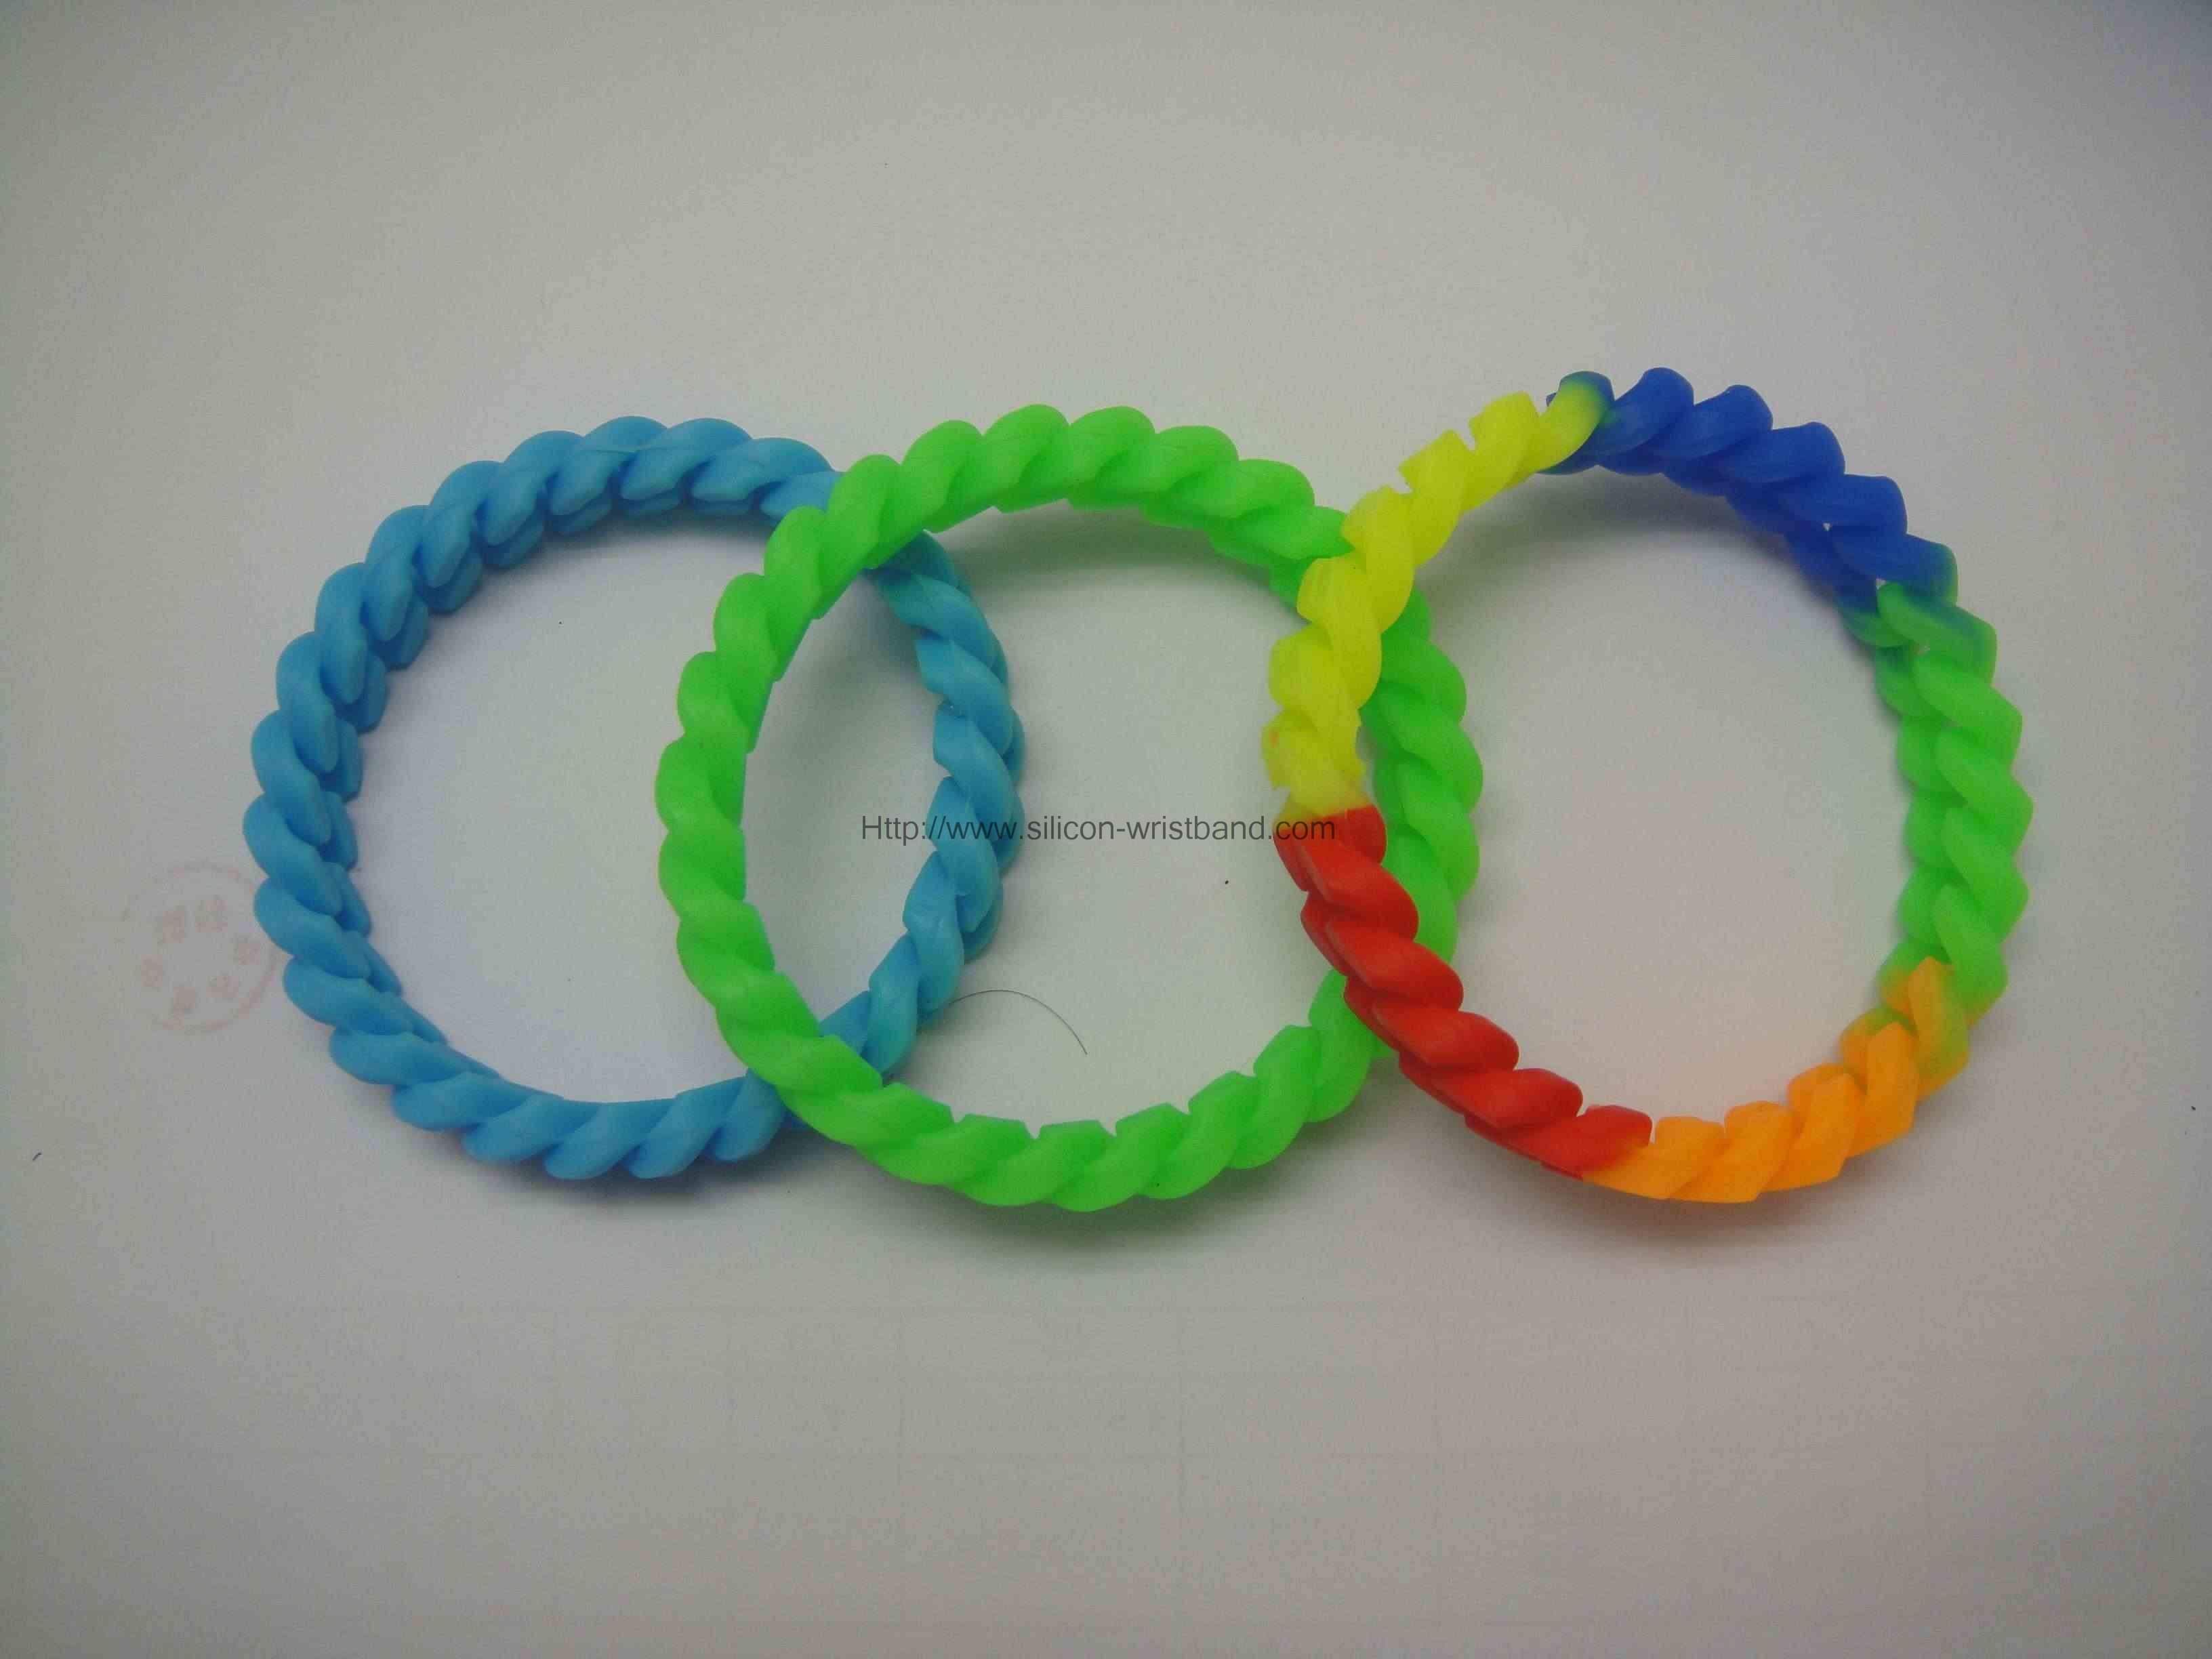 buy wristbands for events